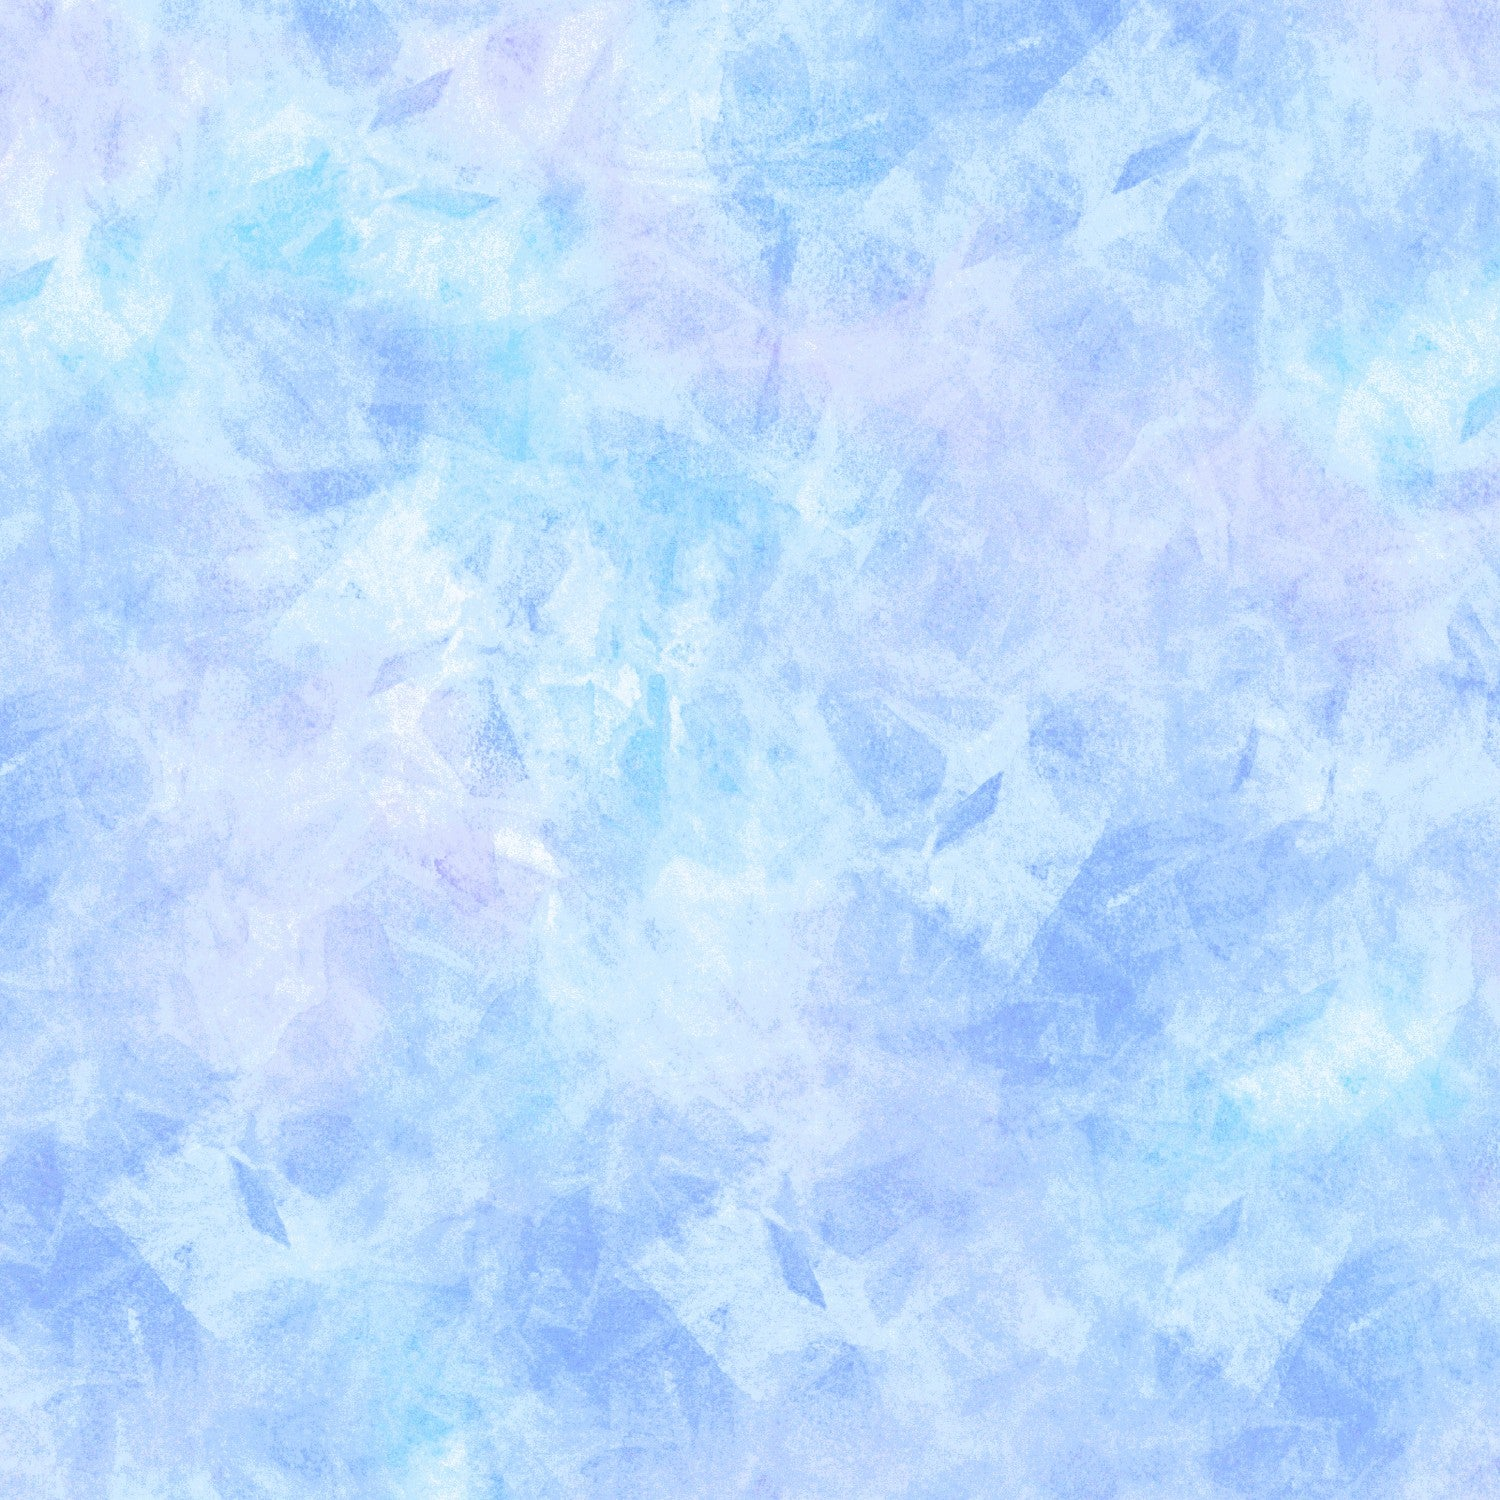 King arctic blue ice weighted blanket nvjuhfo Image collections